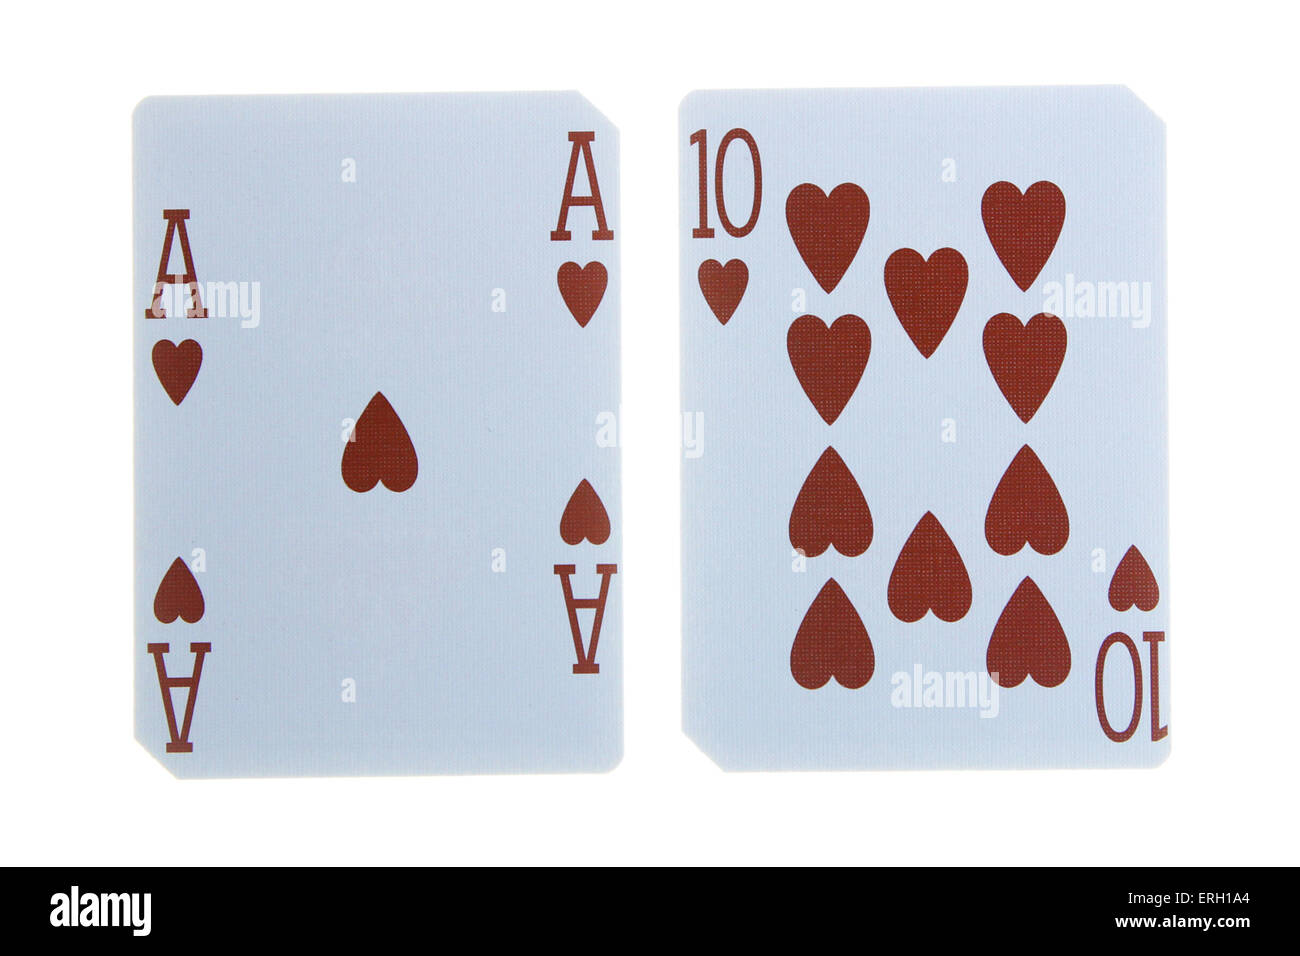 best classic winning blackjack combination ten and ace of hearts - Stock Image